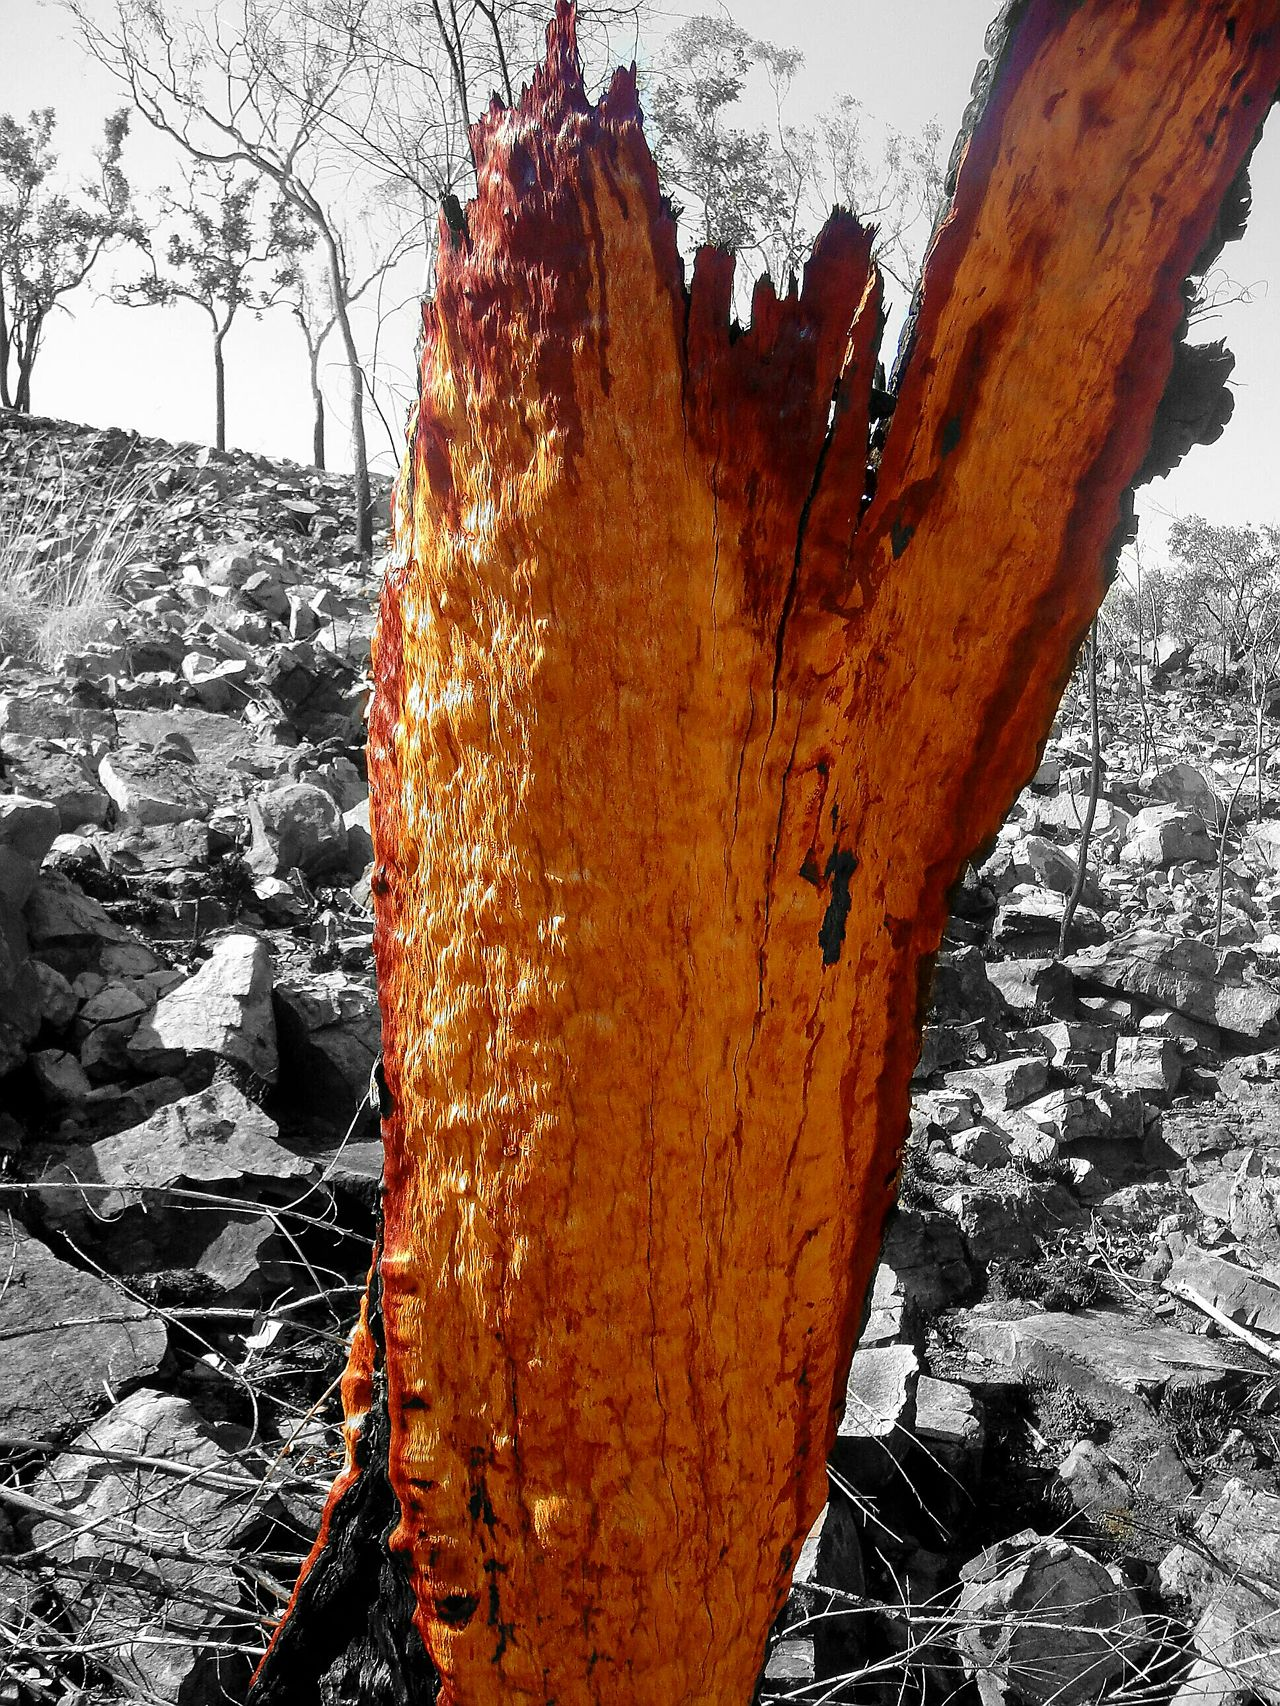 Original Burnt Orange Bark Colour Black And White Background Northern Territory Australia Limmen Tree Wood Orange Burnt Fire Back Burning Rocks Hill Outbackaustralia Outback Bush No People Outdoors Walkabout EyeEmNewHere EyeEmNewHere